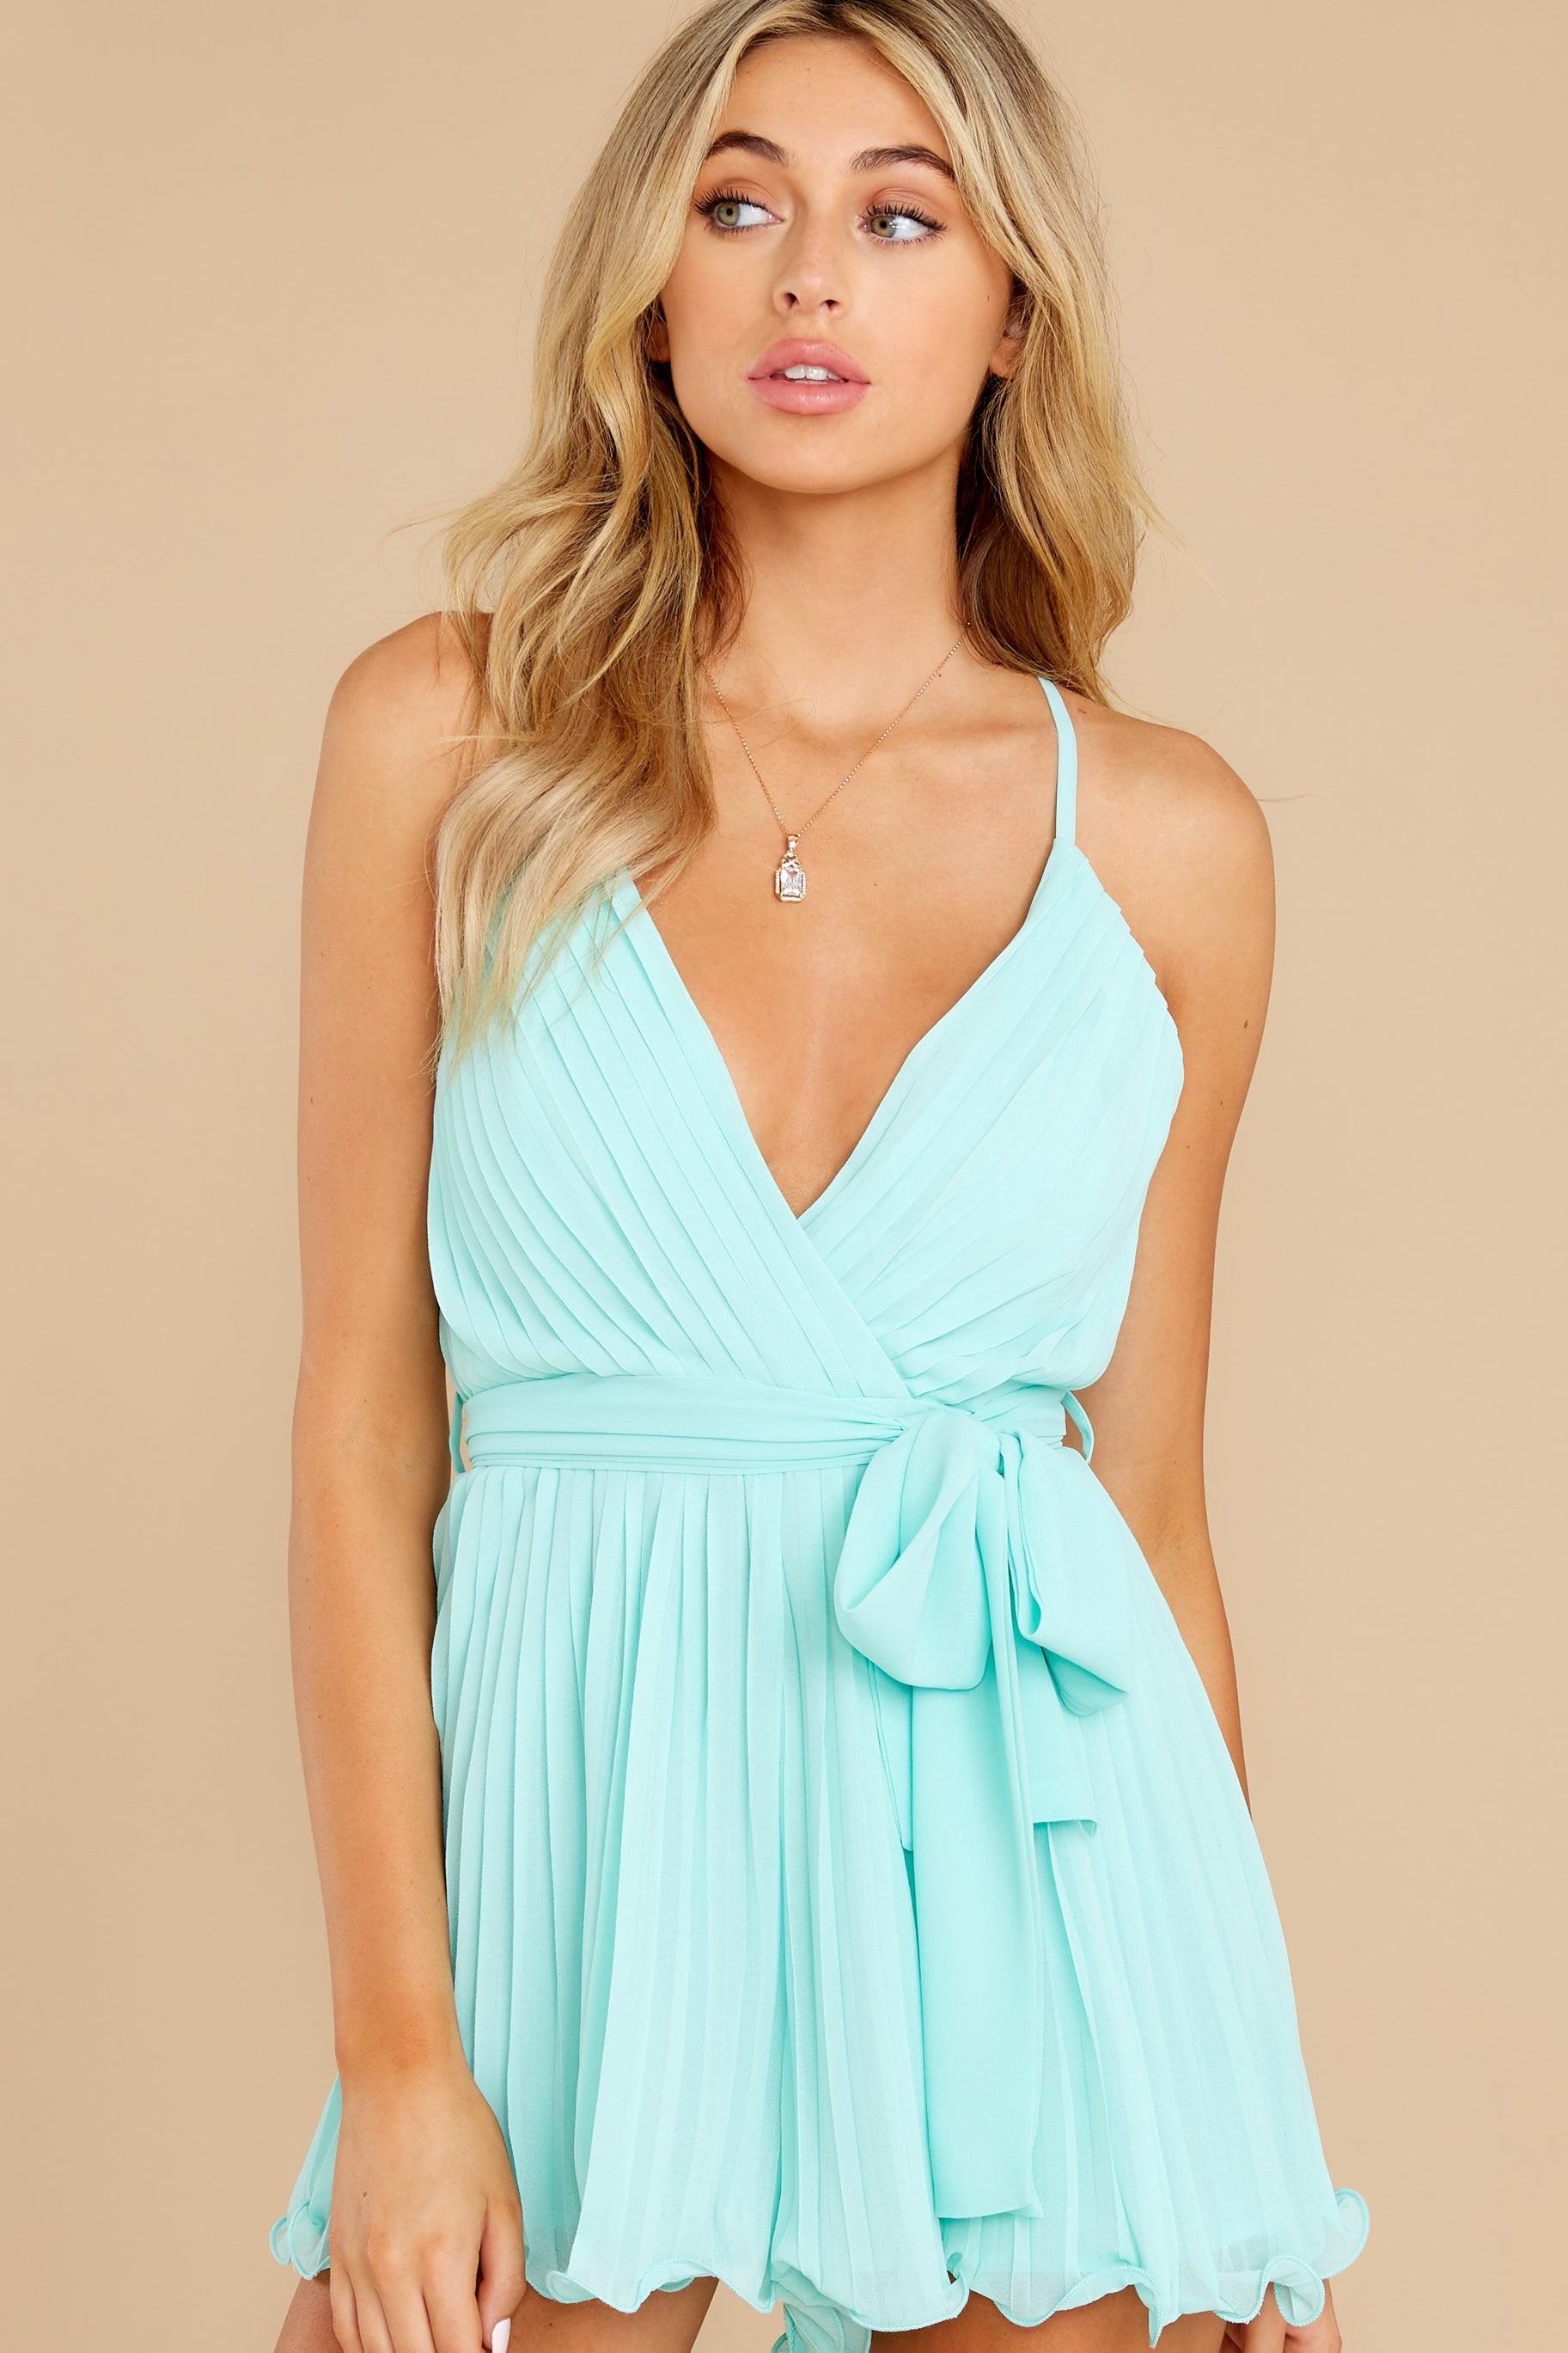 7 Everywhere You Look Aqua Romper at reddress.com